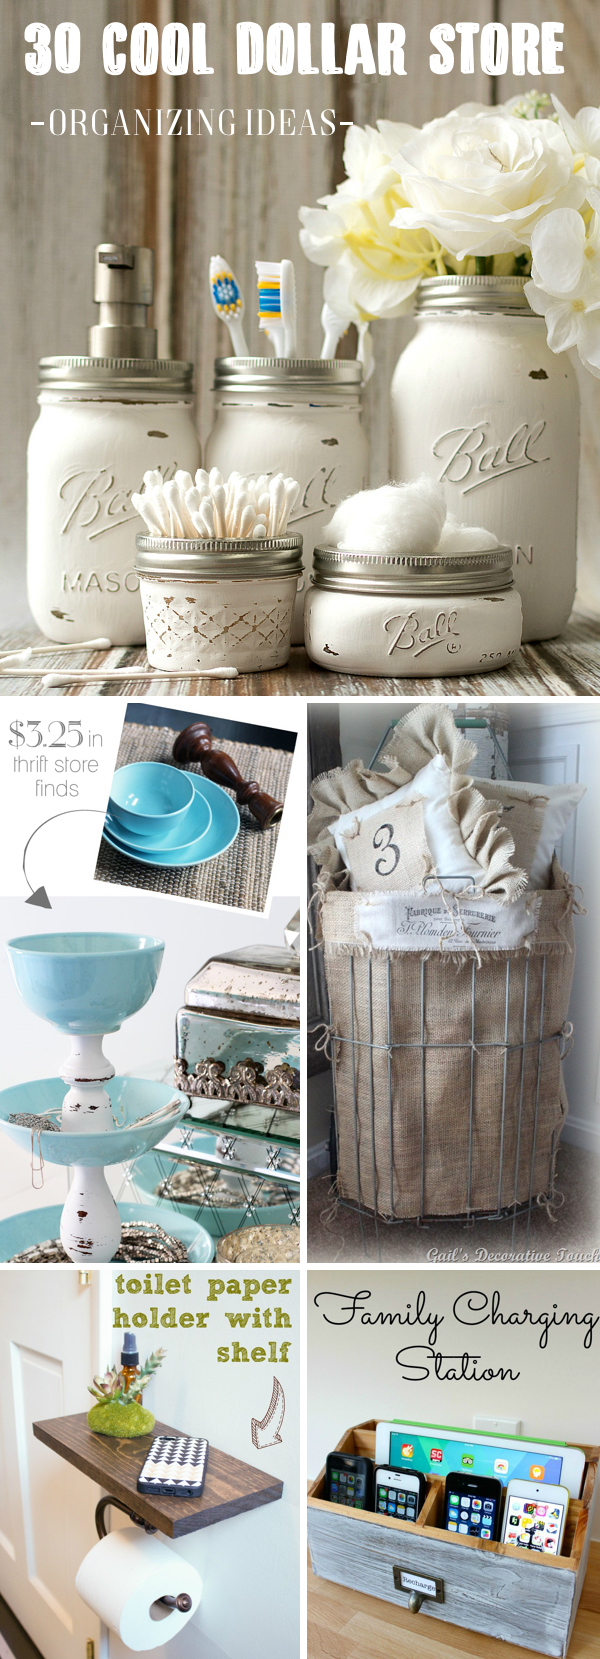 30 Cool Dollar Store Organizing Ideas Making The Most of your Space with Utmost Style